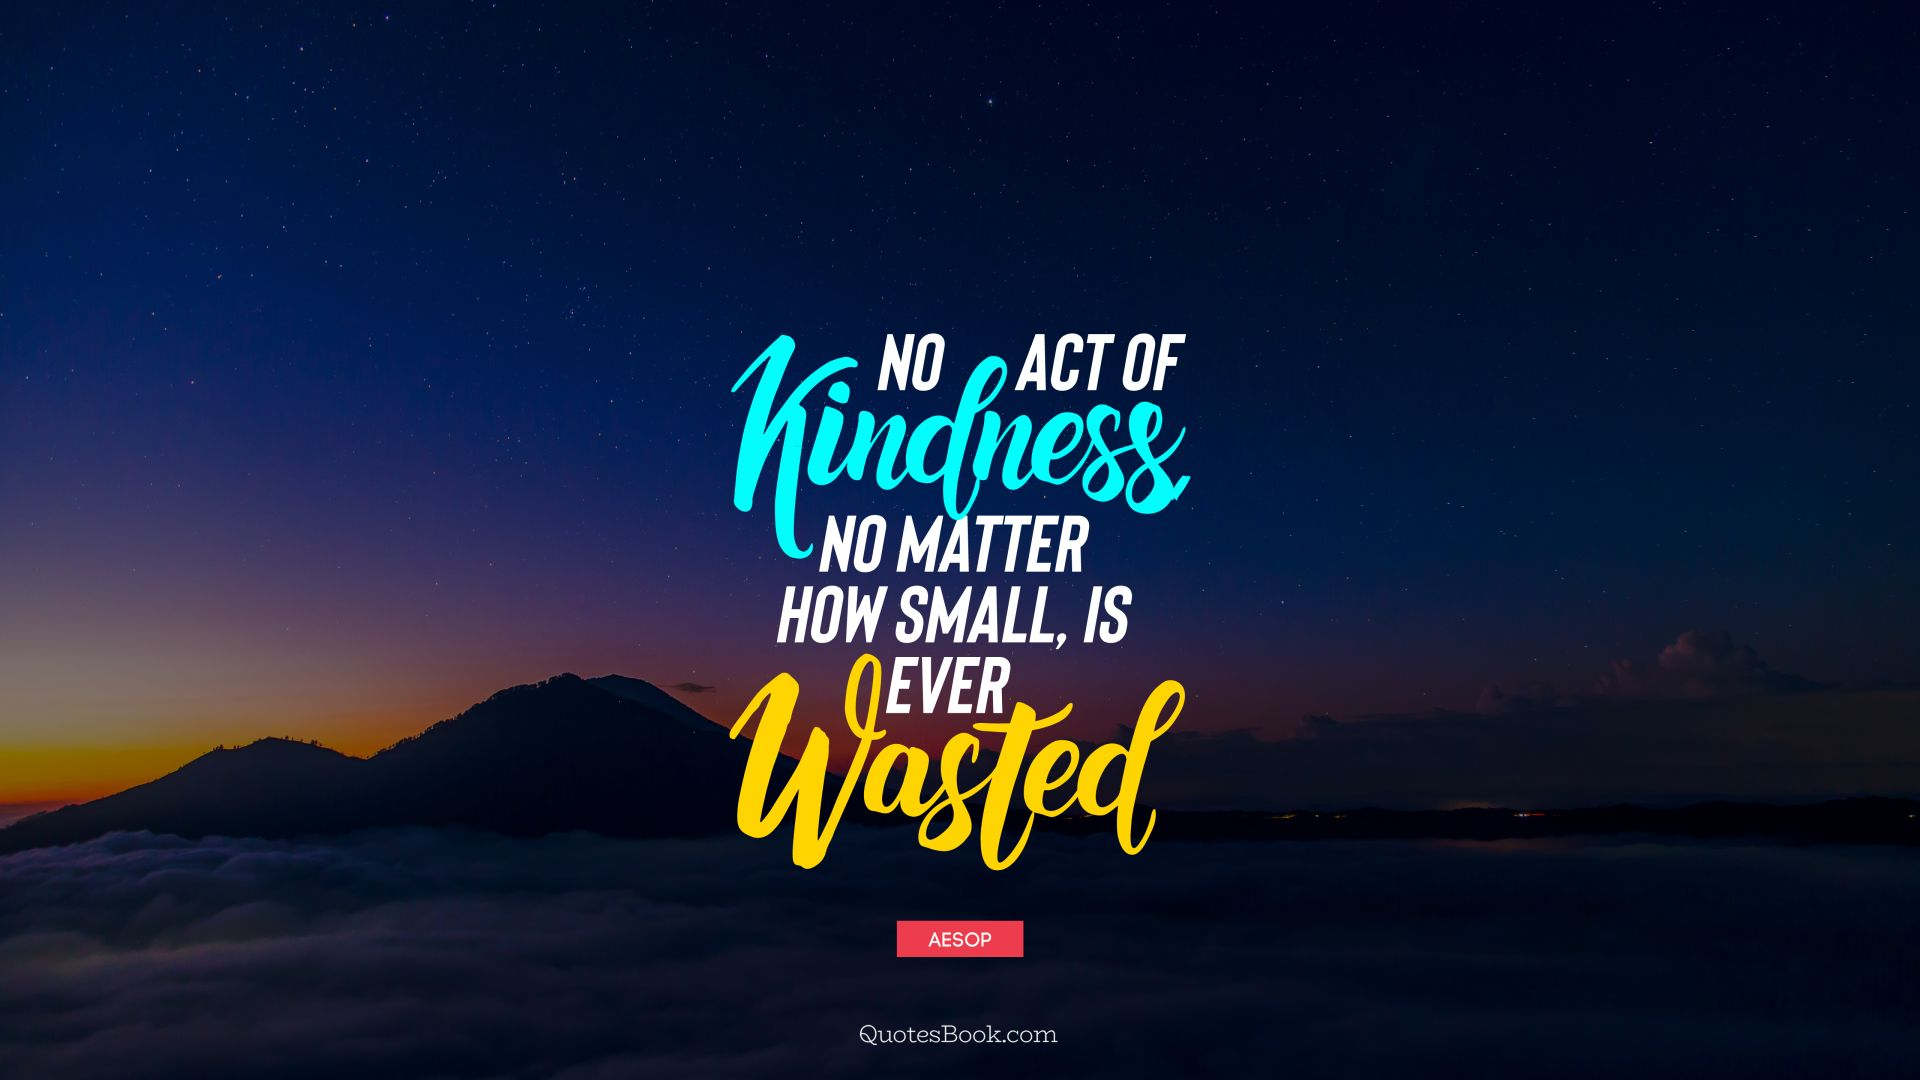 No act of kindness, no matter how small, is ever wasted. - Quote by Aesop